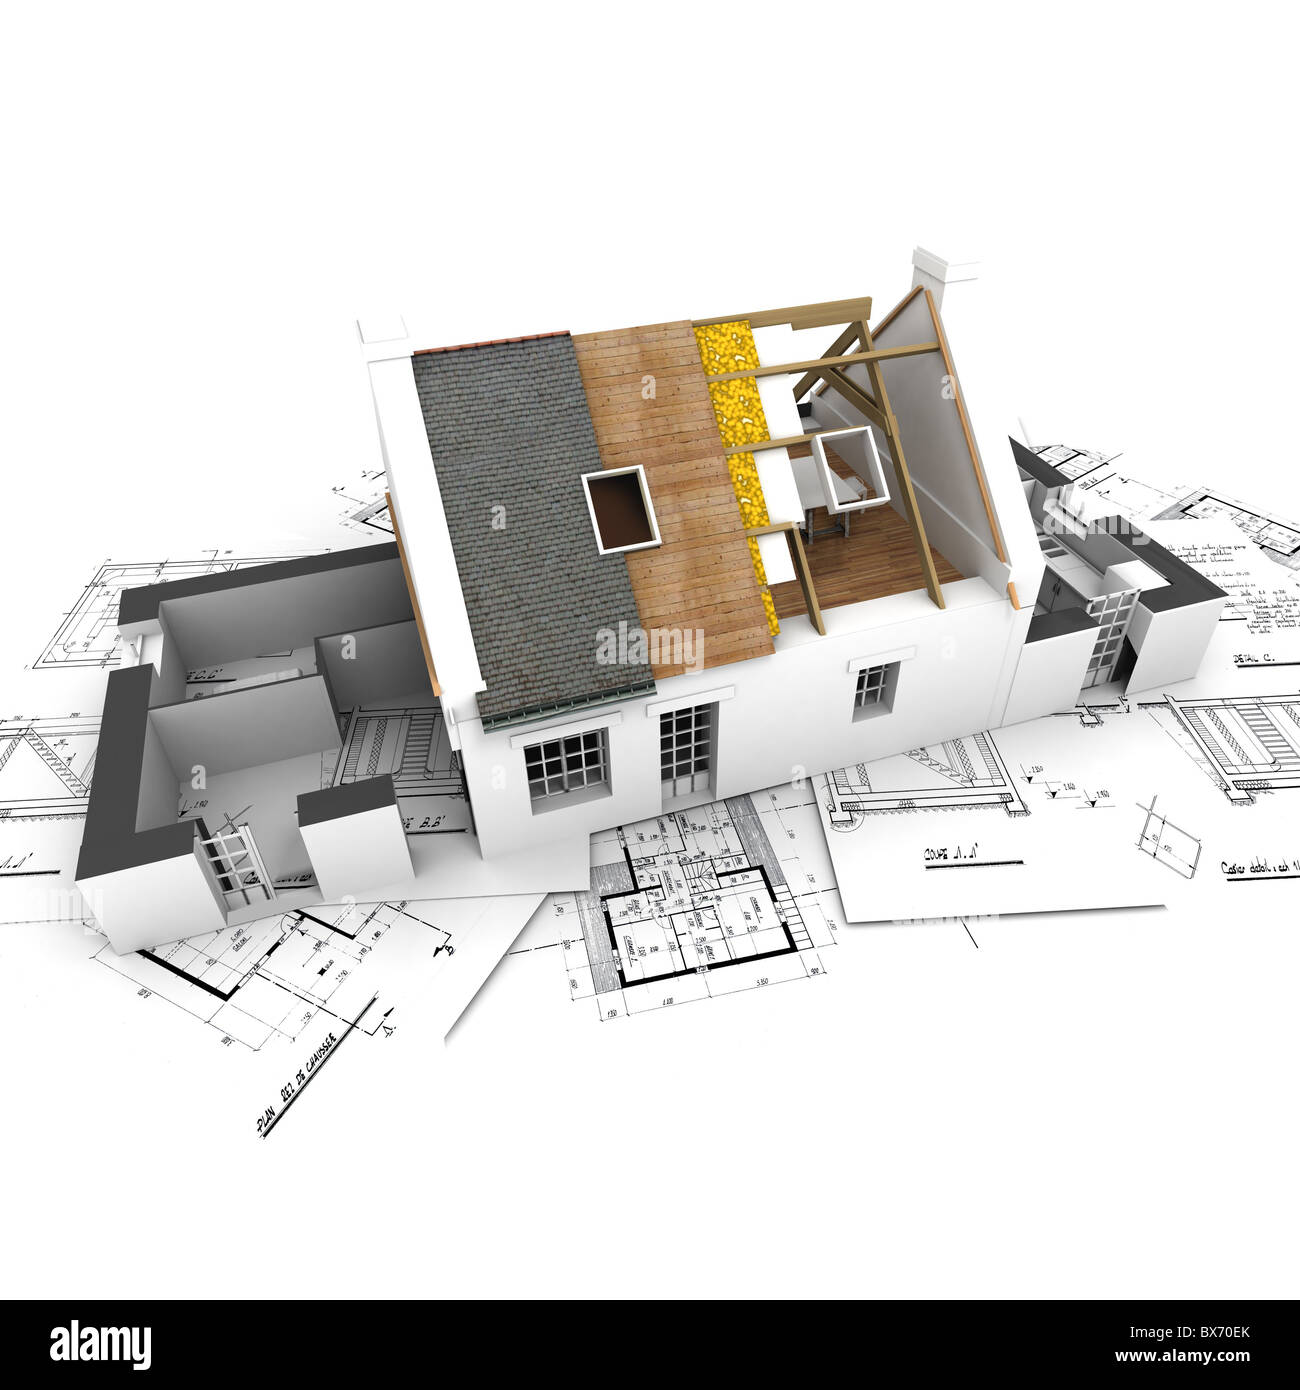 Exposed roof stock photos exposed roof stock images alamy house with exposed roof layers on top of architect blueprints stock image malvernweather Choice Image